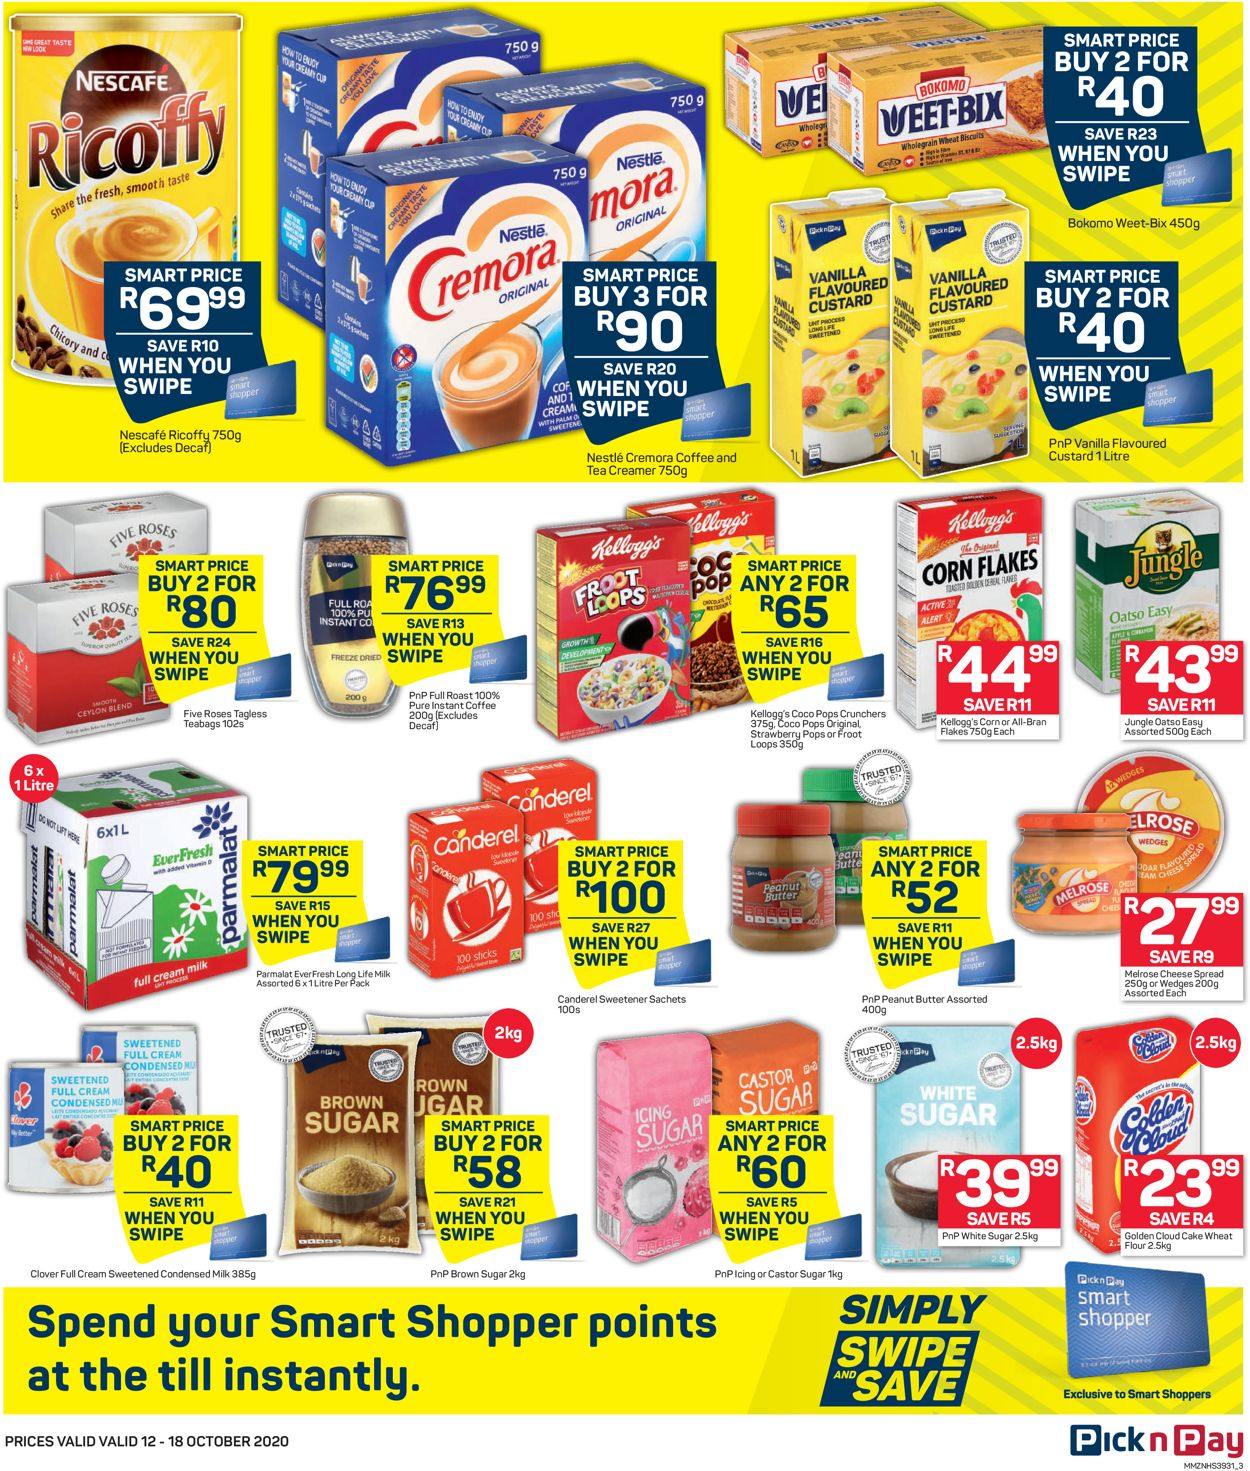 Pick n Pay Catalogue - 2020/10/12-2020/10/18 (Page 3)